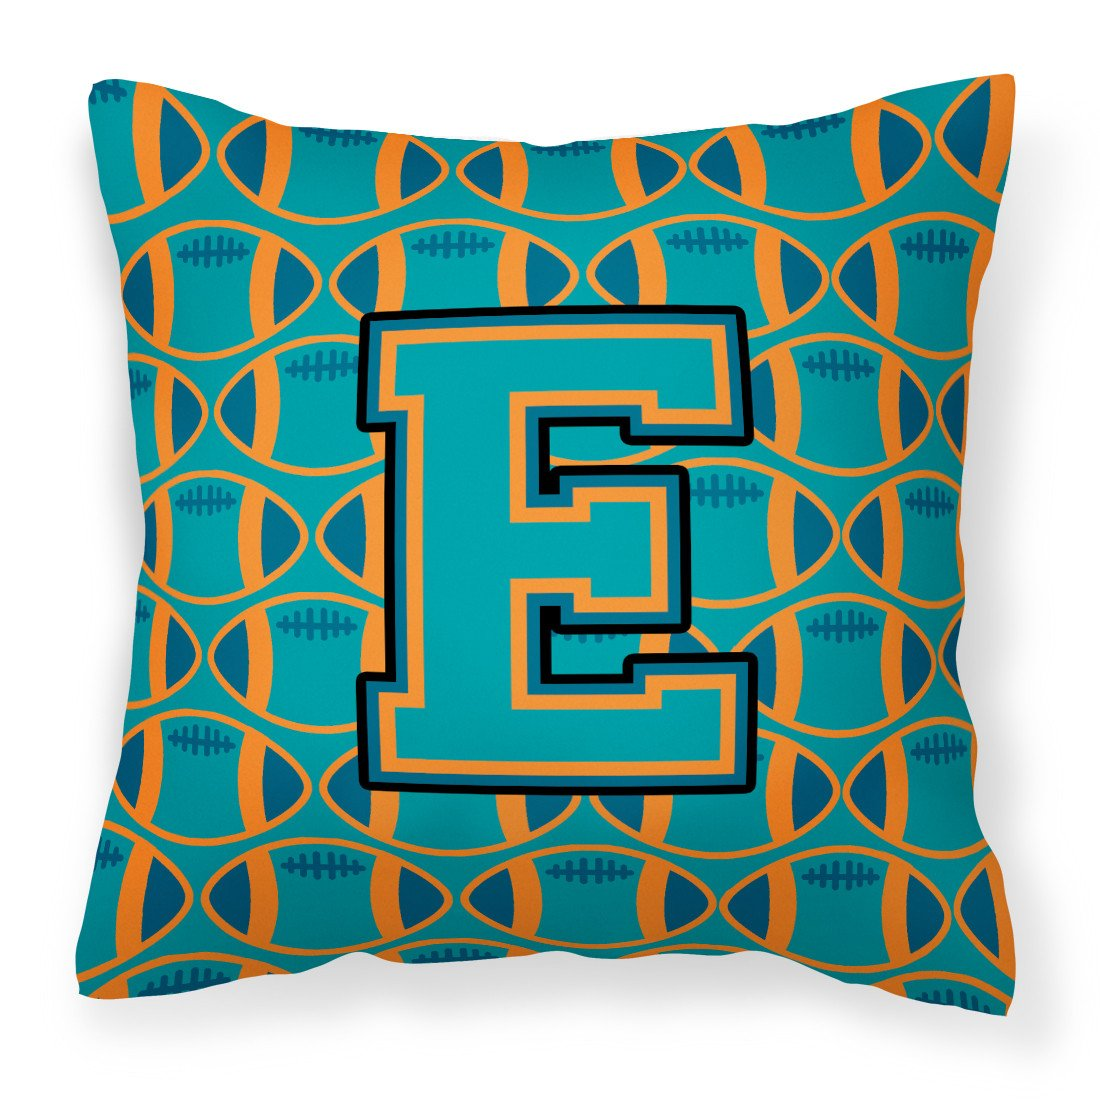 Letter E Football Aqua, Orange and Marine Blue Fabric Decorative Pillow CJ1063-EPW1414 by Caroline's Treasures